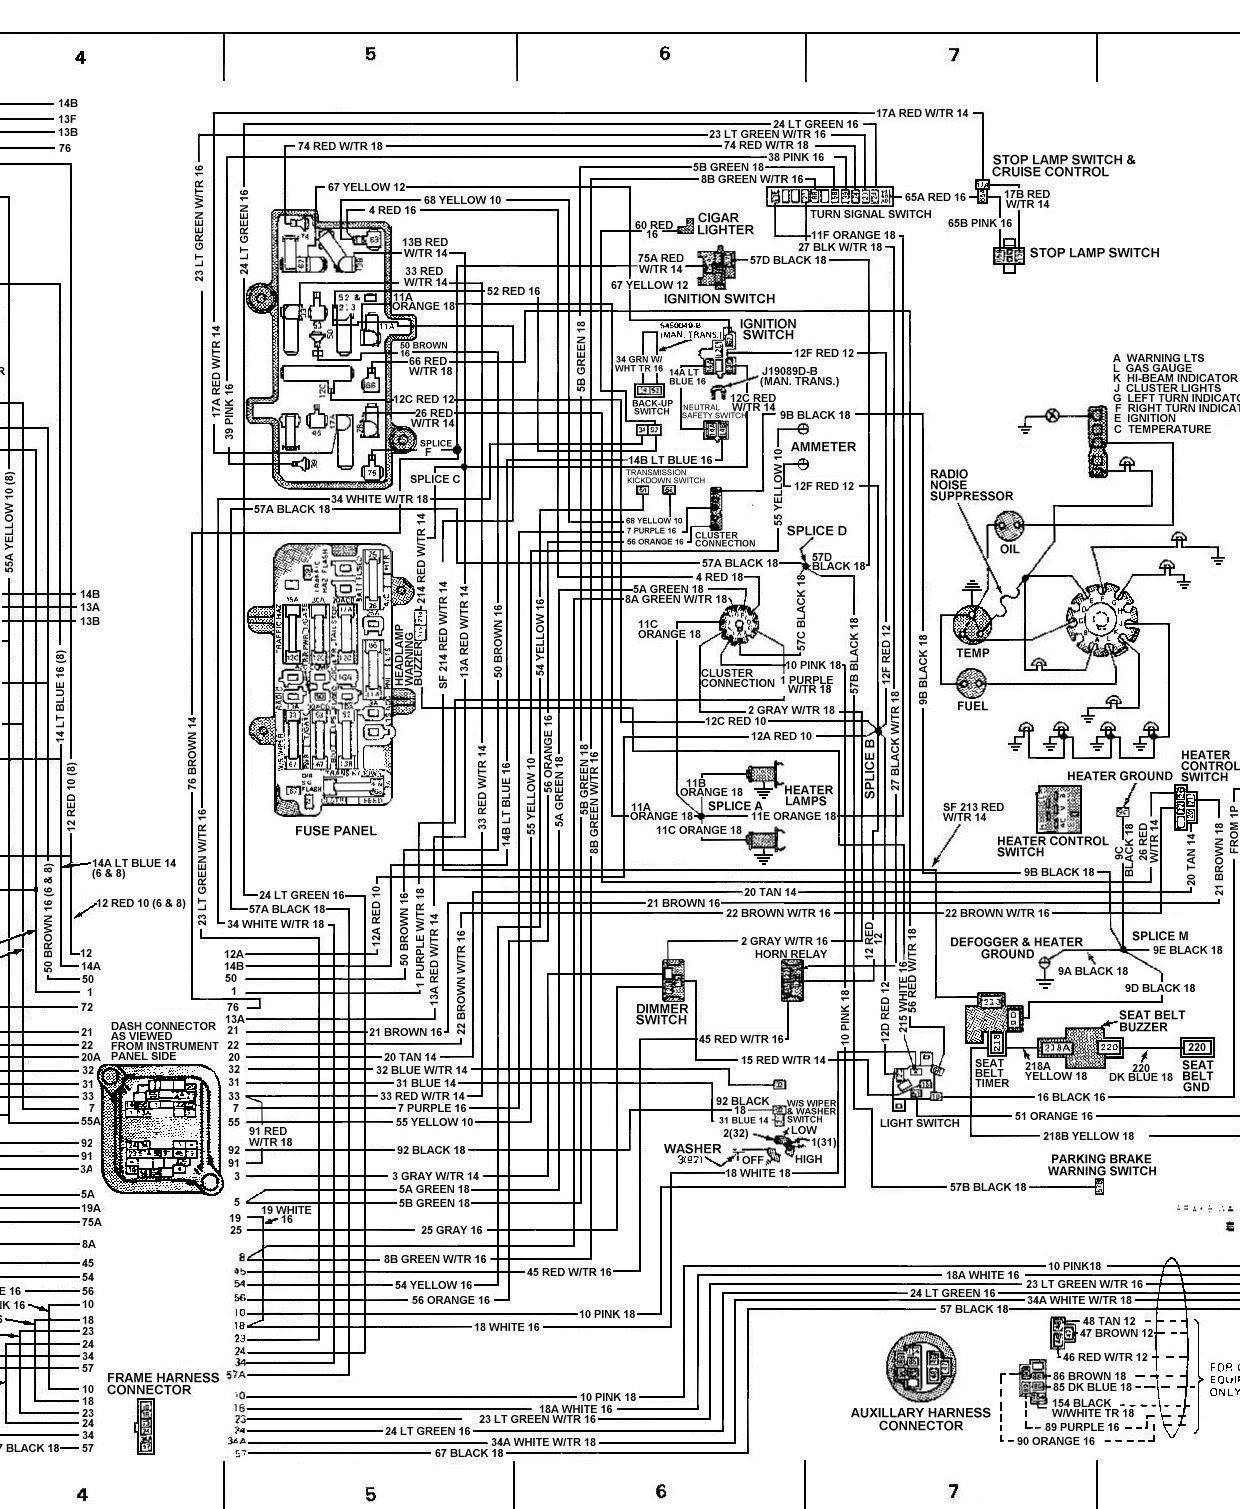 Chevy Wiring Diagrams Schematics Avalanche 2004 1500 Pinterest